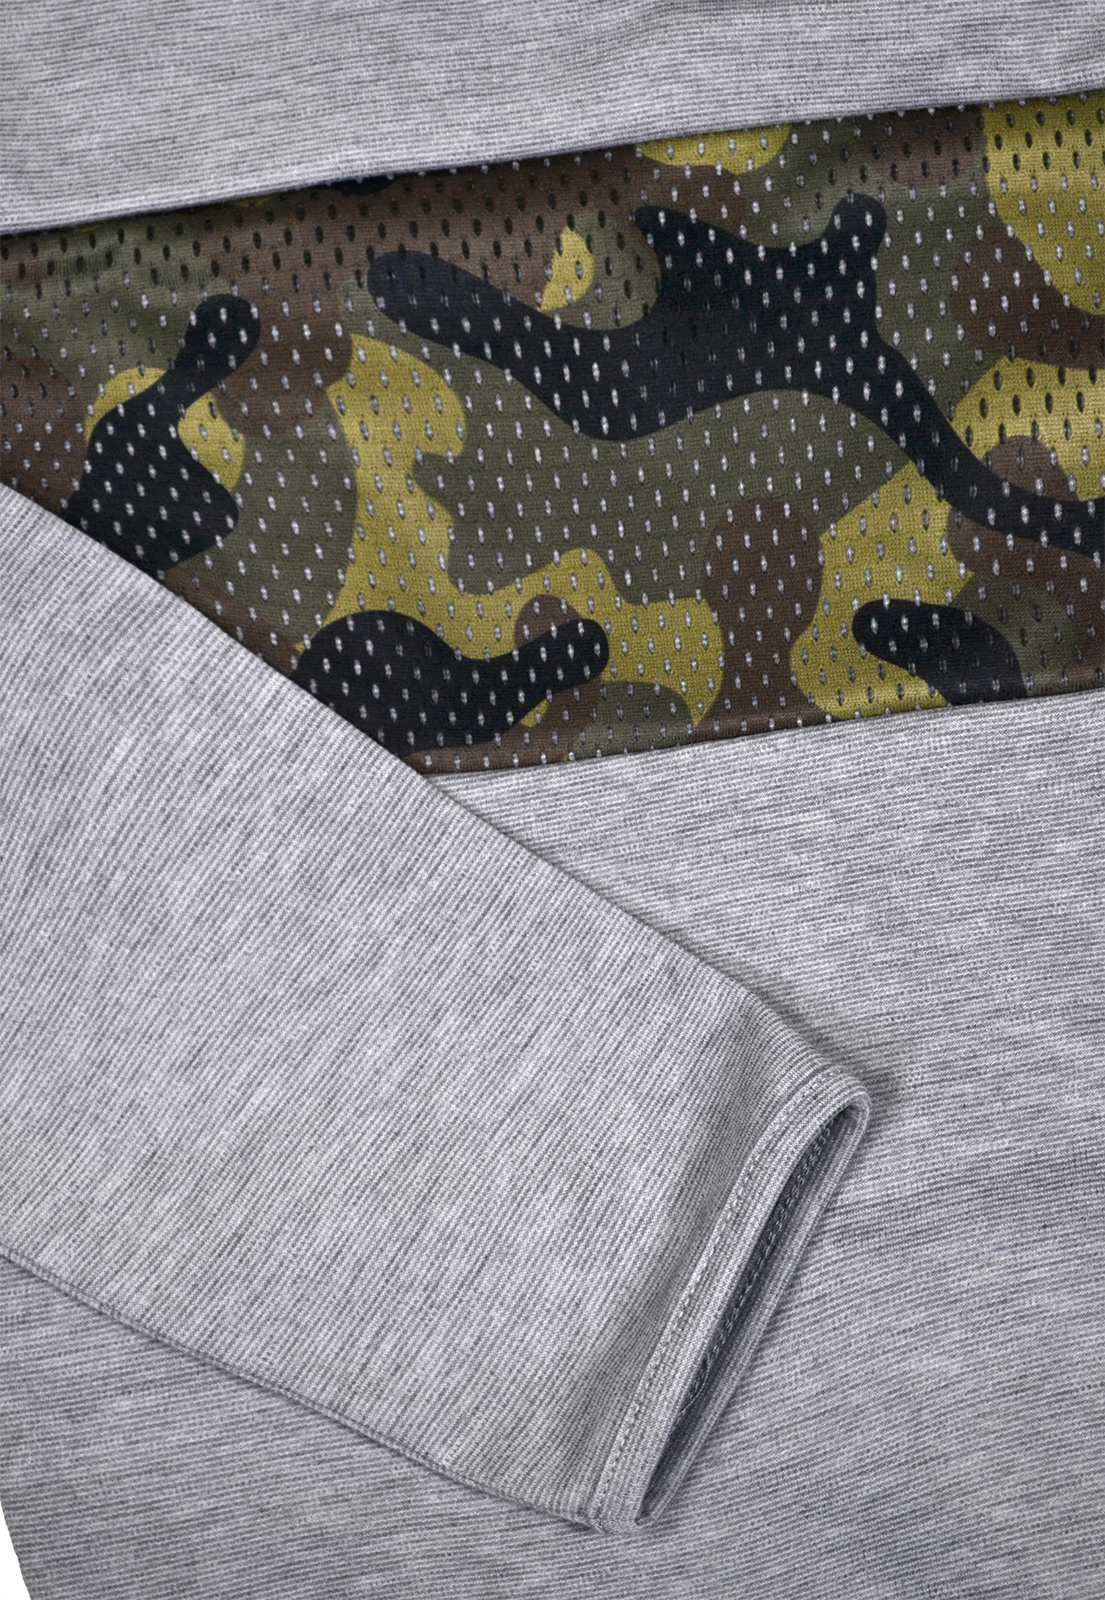 Boys-Camo-Jumper-Kids-New-Green-Grey-Long-Sleeve-Hoodie-Top-Ages-2-3-4-5-6-Years thumbnail 3